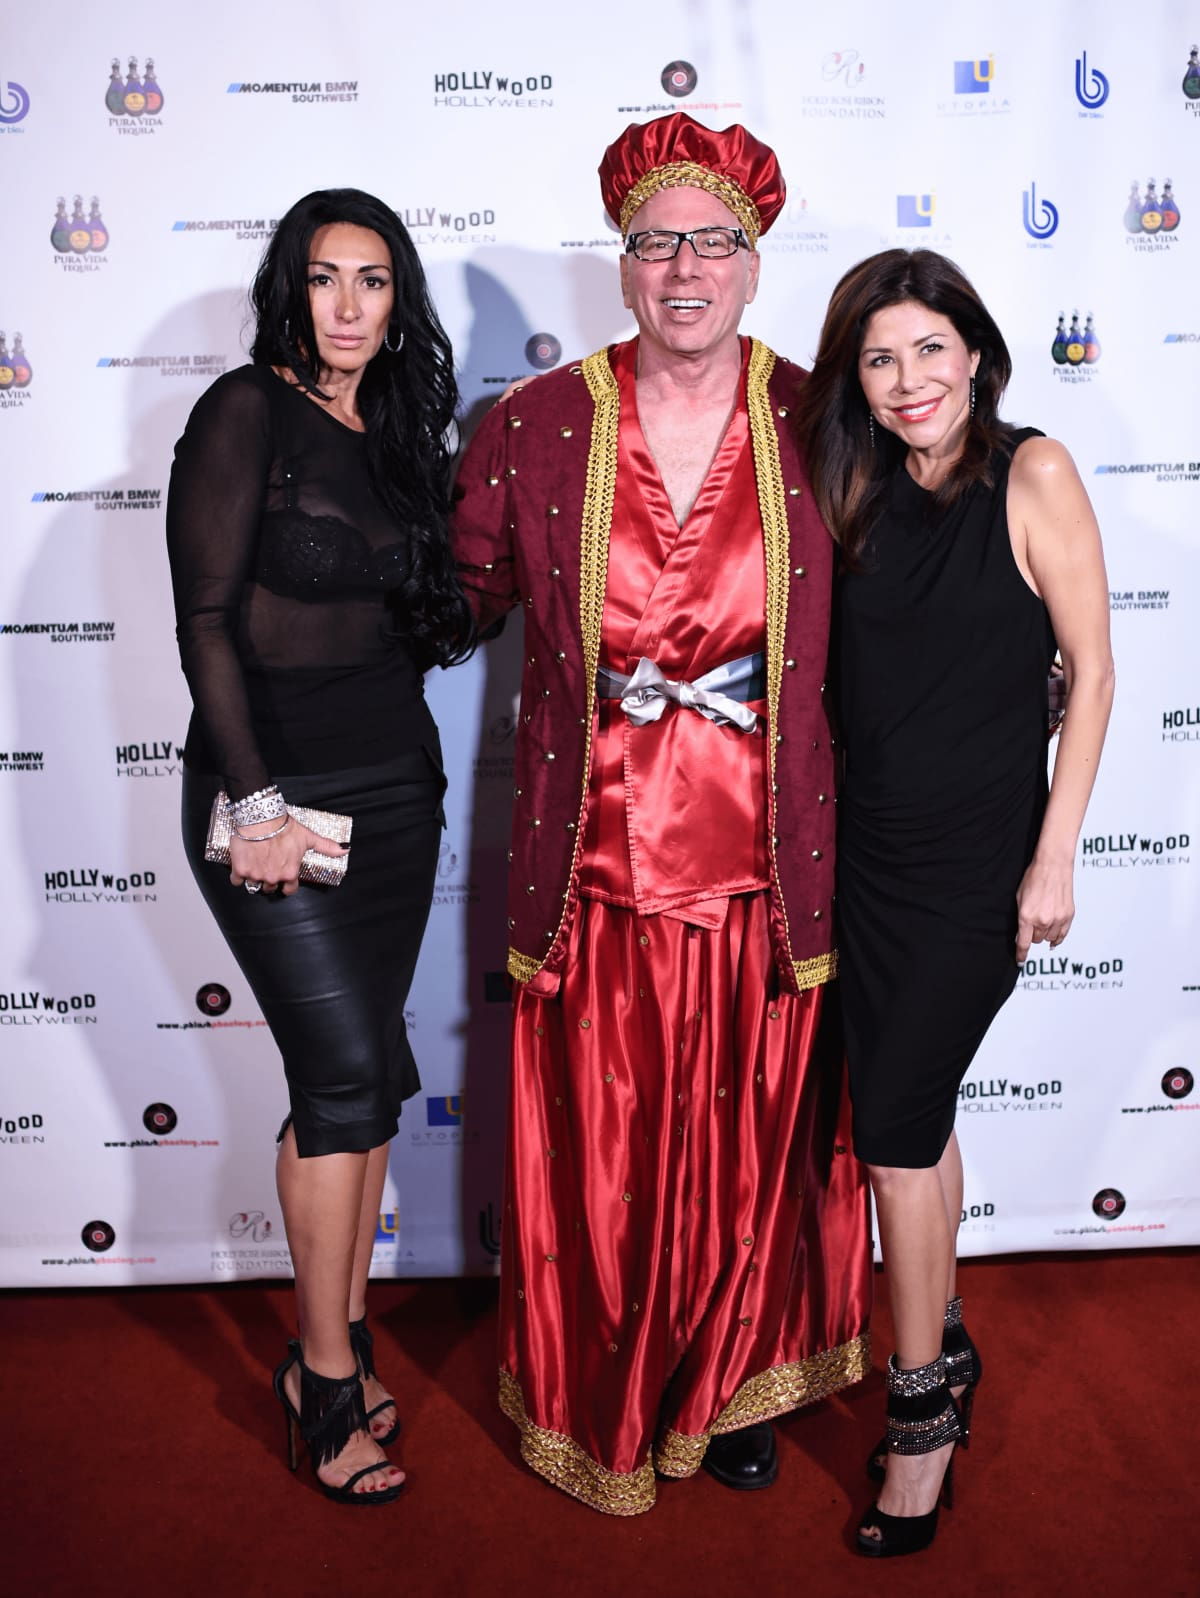 Houston, Hollywood Hollyween Party, Oct. 2016, Angelica Jimenez Chapman, Dr. Franklin Rose, Ericka Bagwell